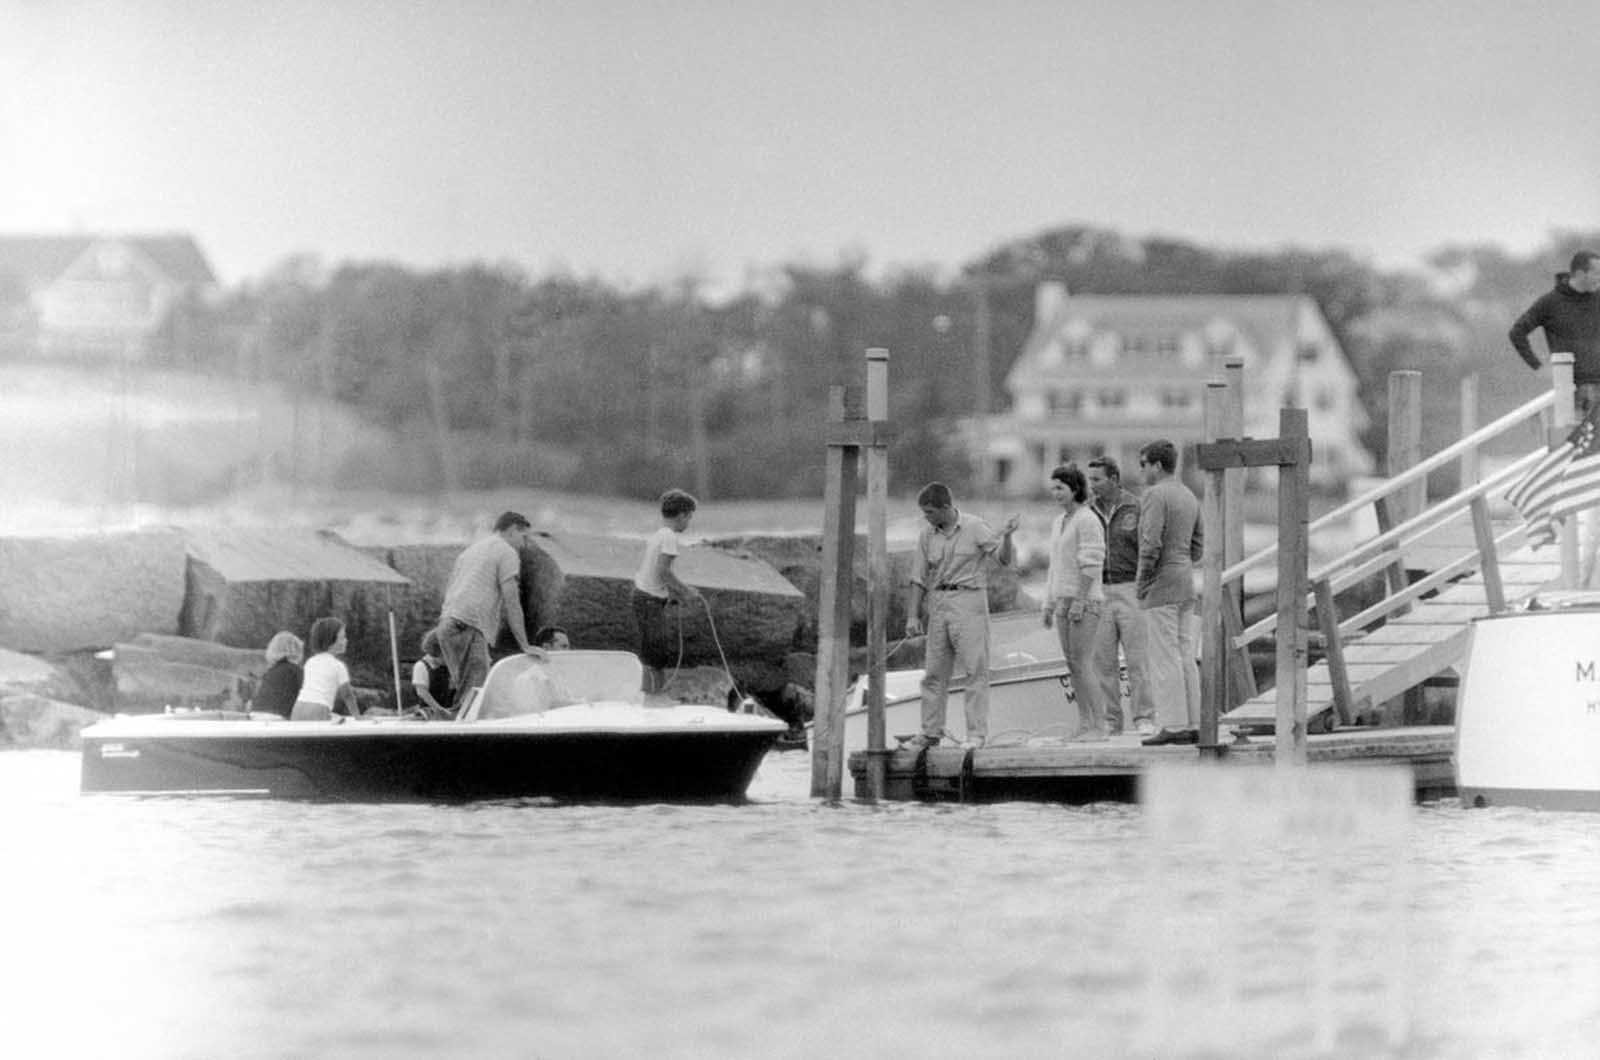 President John Kennedy, right, and his wife, Jacqueline, wearing bathing suit, stand on a pier after spending the afternoon boating on Nantucket Sound at Hyannis Port, Massachusetts, on August 5, 1961. The President and U.N. Ambassador Adlai E. Stevenson conferred aboard his yacht during the cruise.